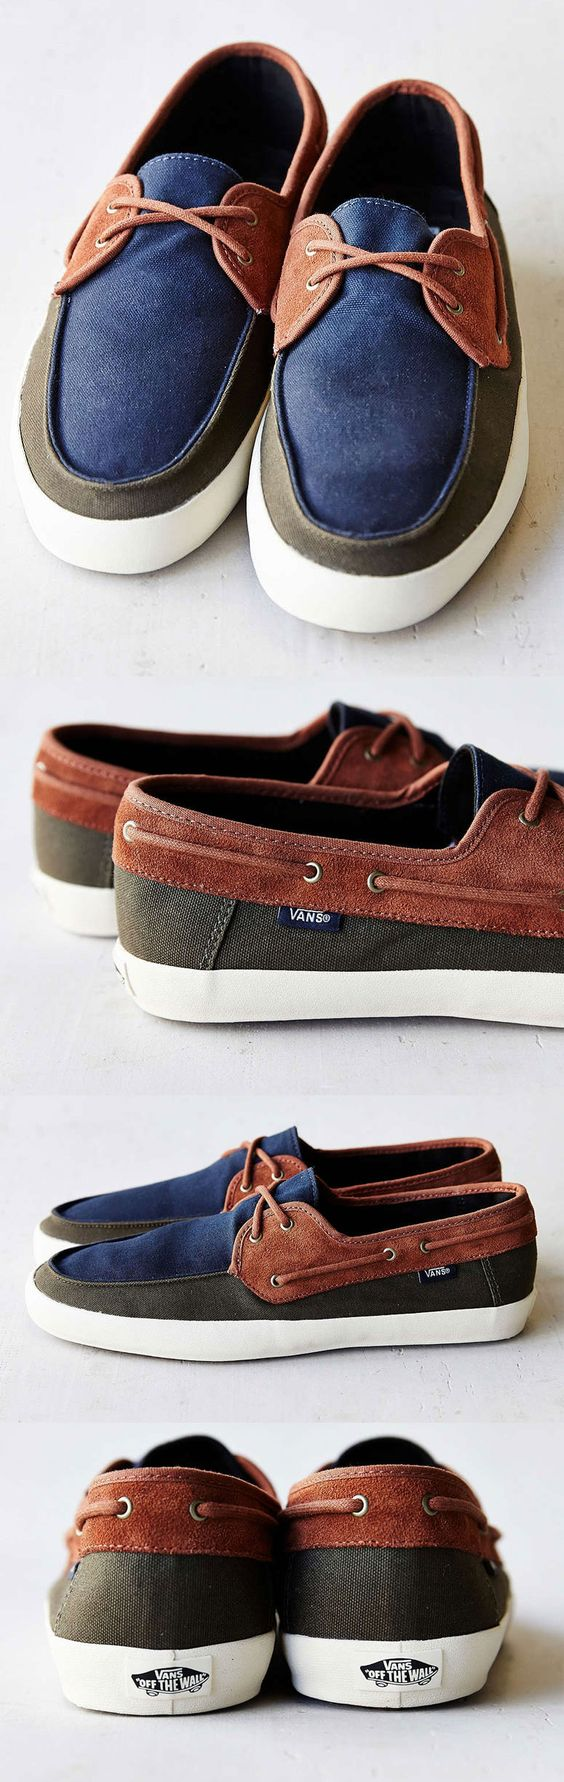 vans mens canvas boat shoes